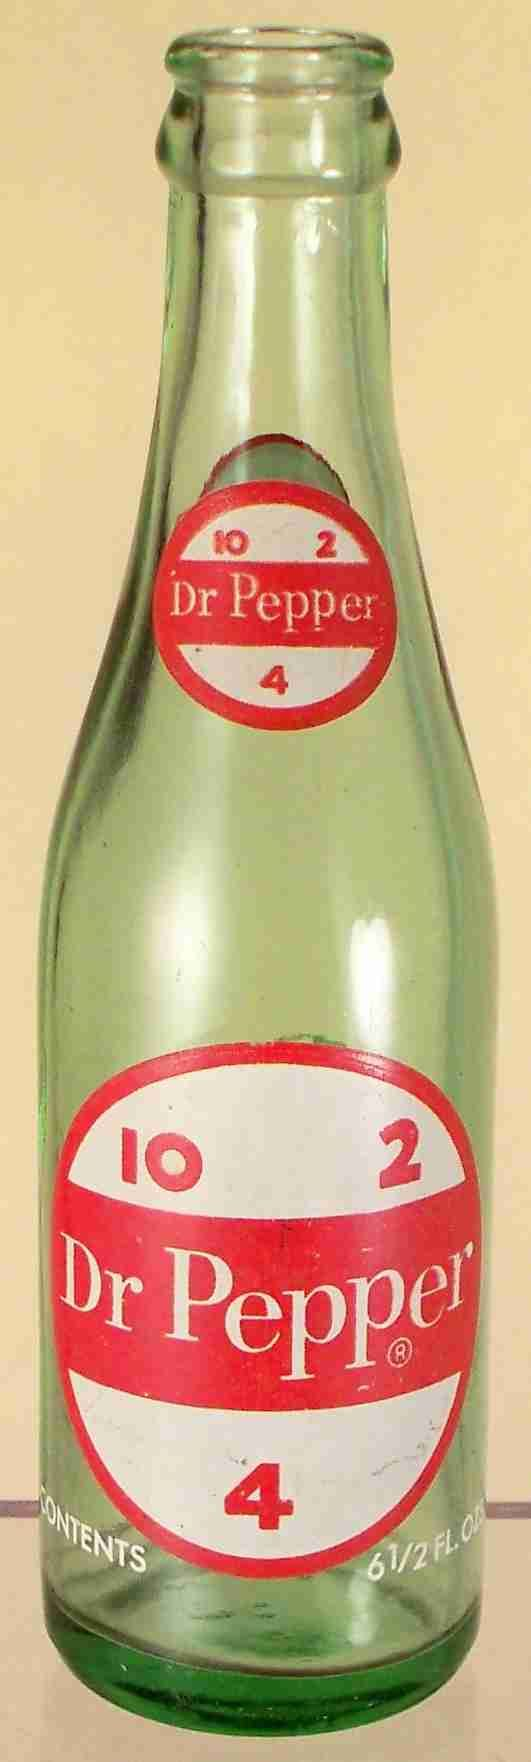 Old Dr Pepper Bottles | both shoulders: Dr Pepper (in circle with 10, 2 and 4)